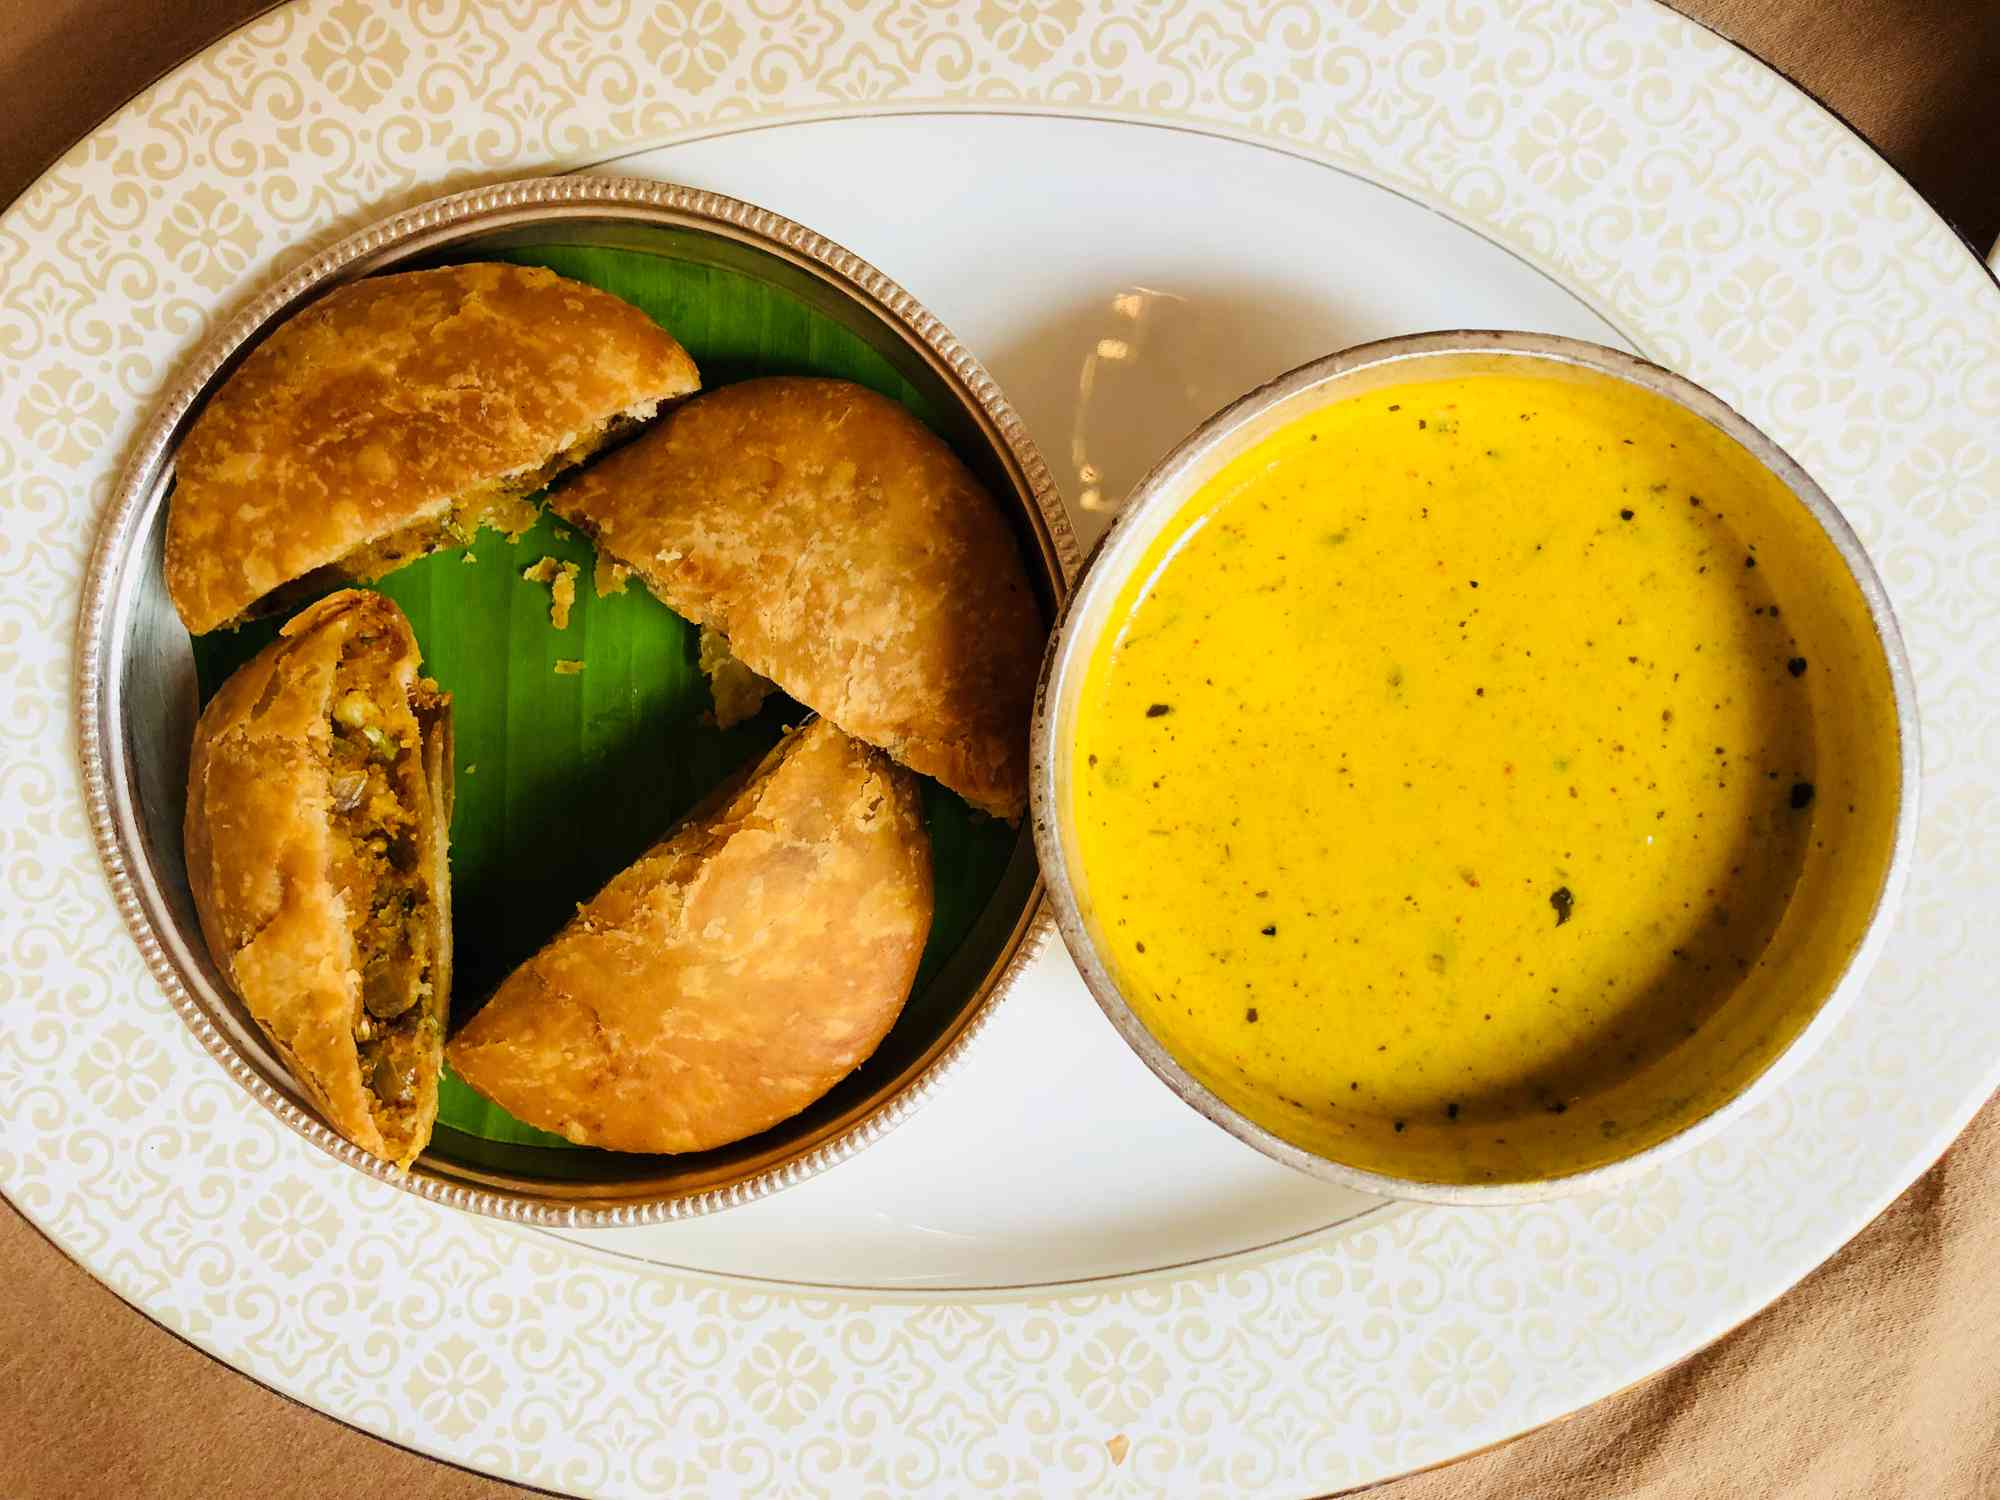 deep fried dumplings next to a bowl of yellow curry